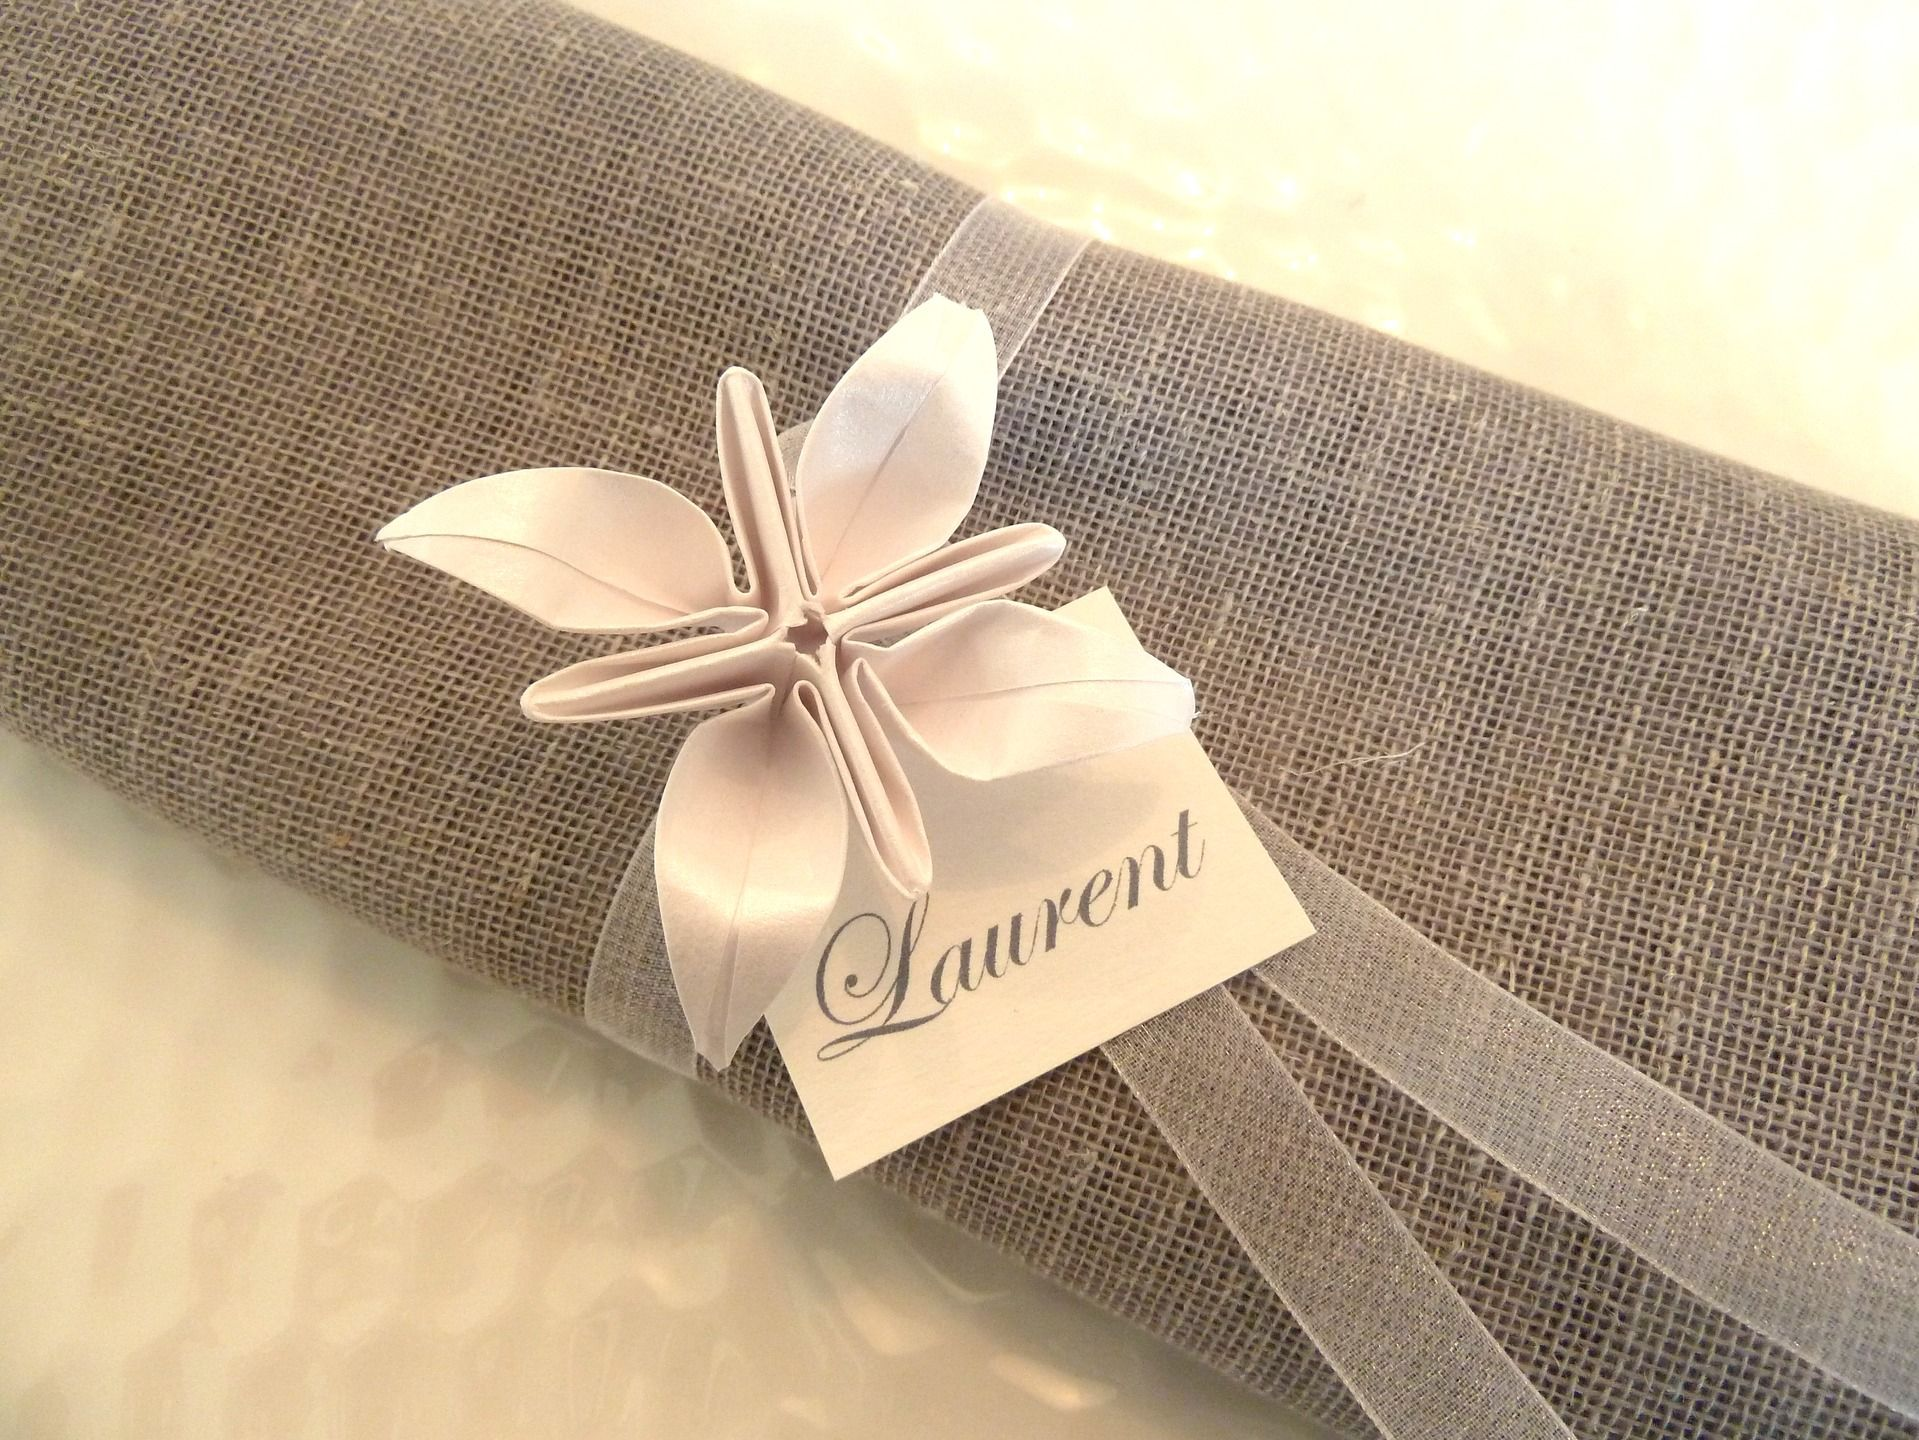 Mariage, origami and cuisine on pinterest